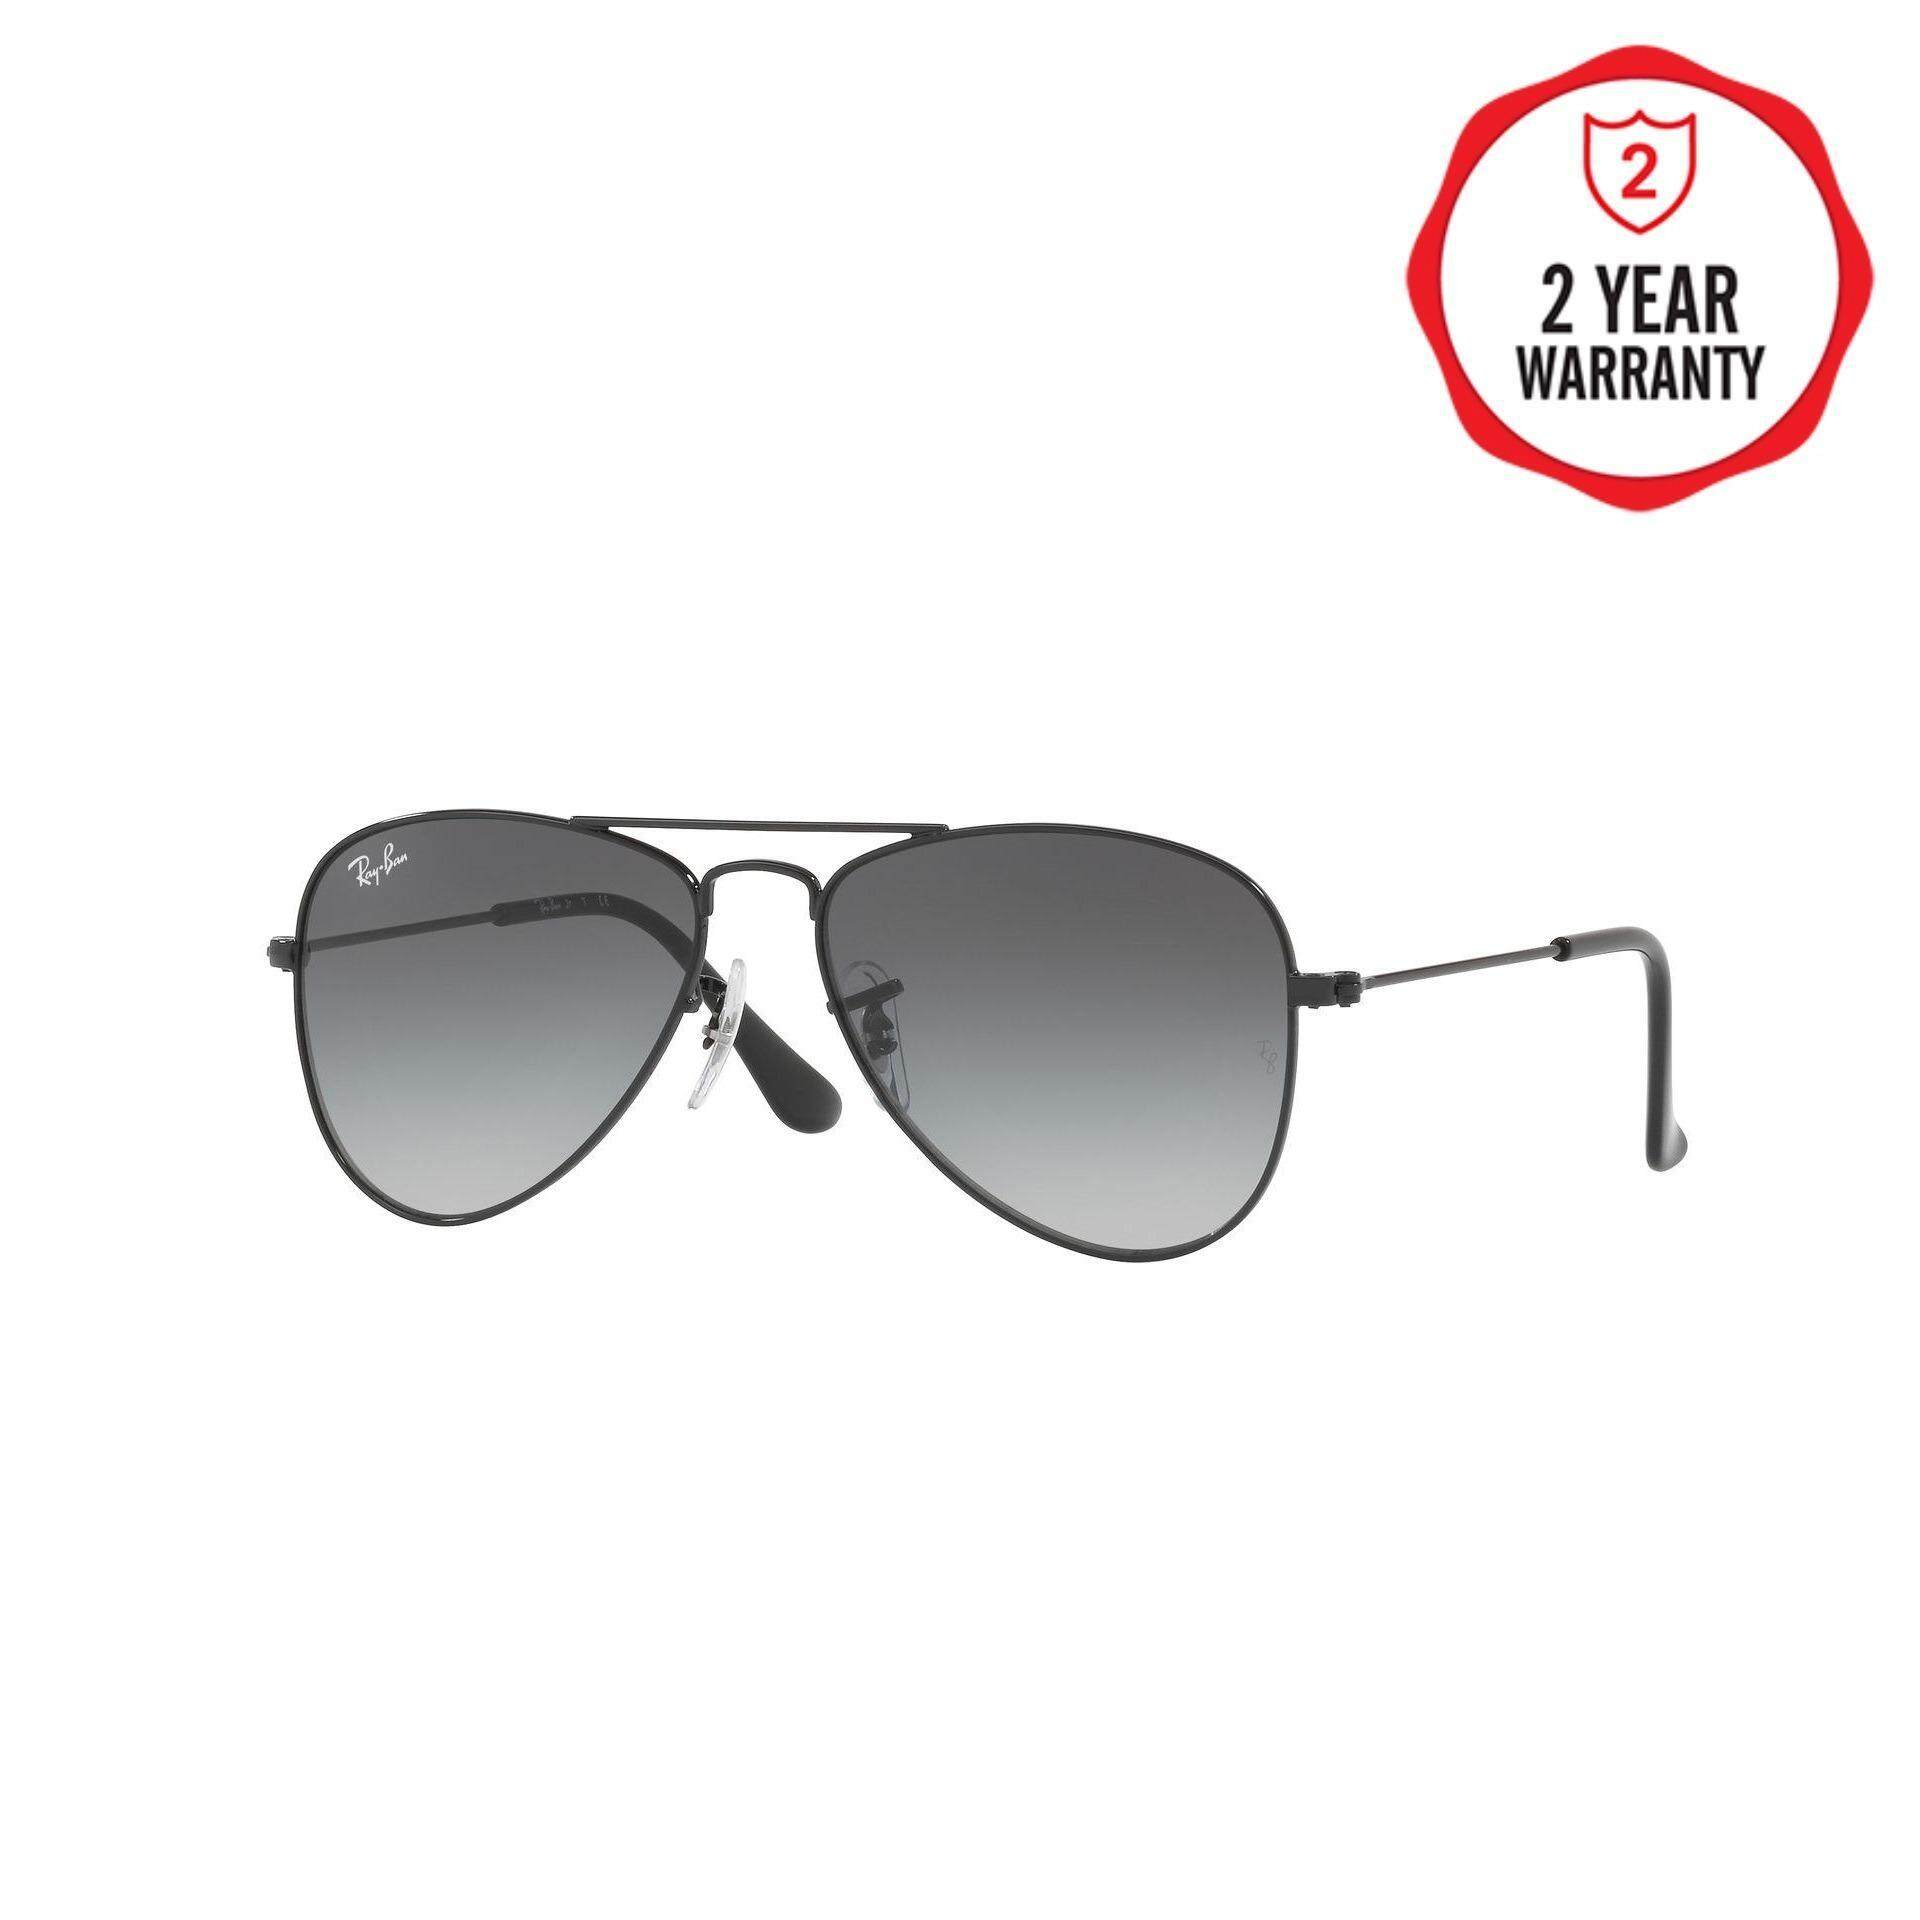 26ebf5caec1431 Ray Ban Products for the Best Price in Malaysia